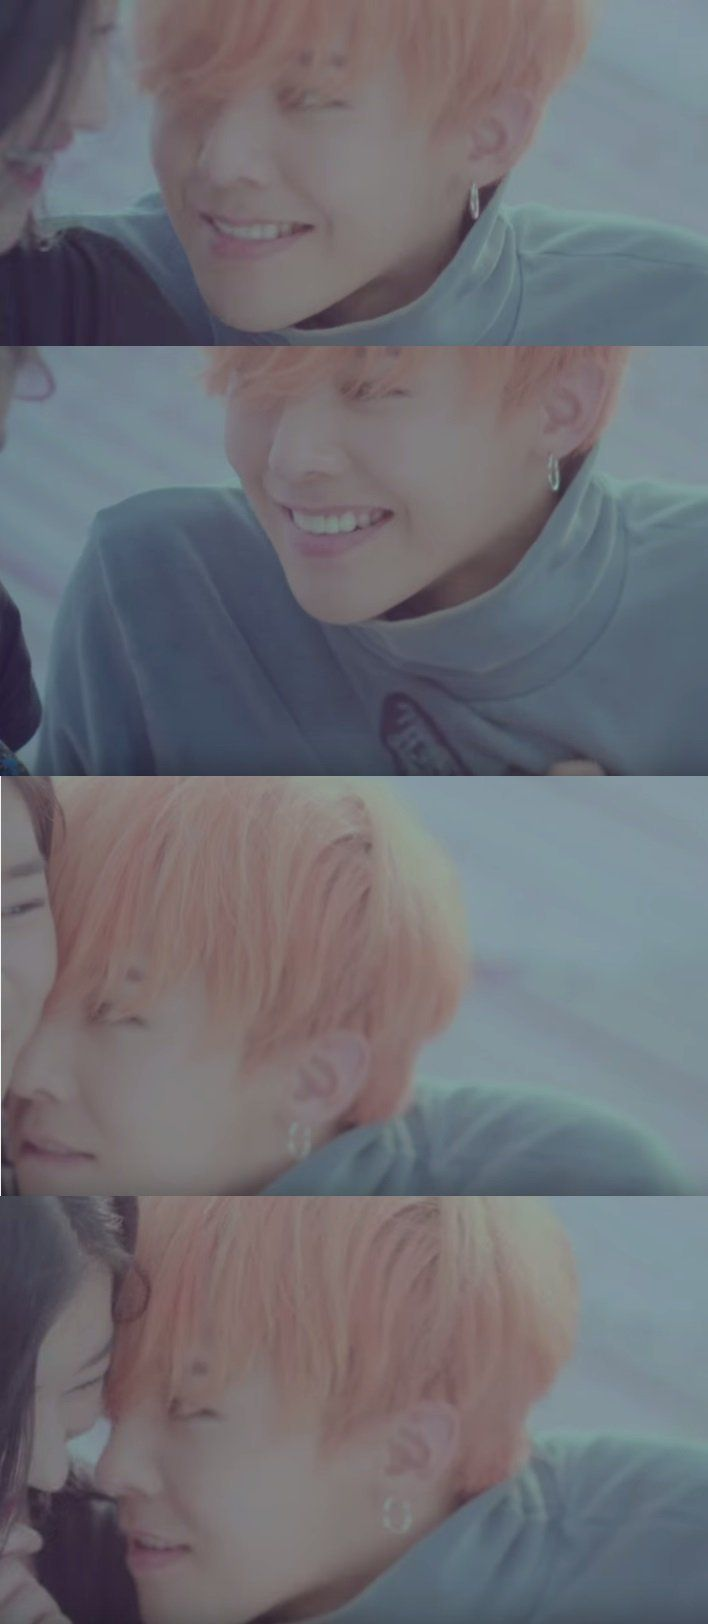 Let's Not Fall In Love MV. Scene with GD and his MV girlfriend. I was squeeeing so much at this scene, and couldn't look away xD